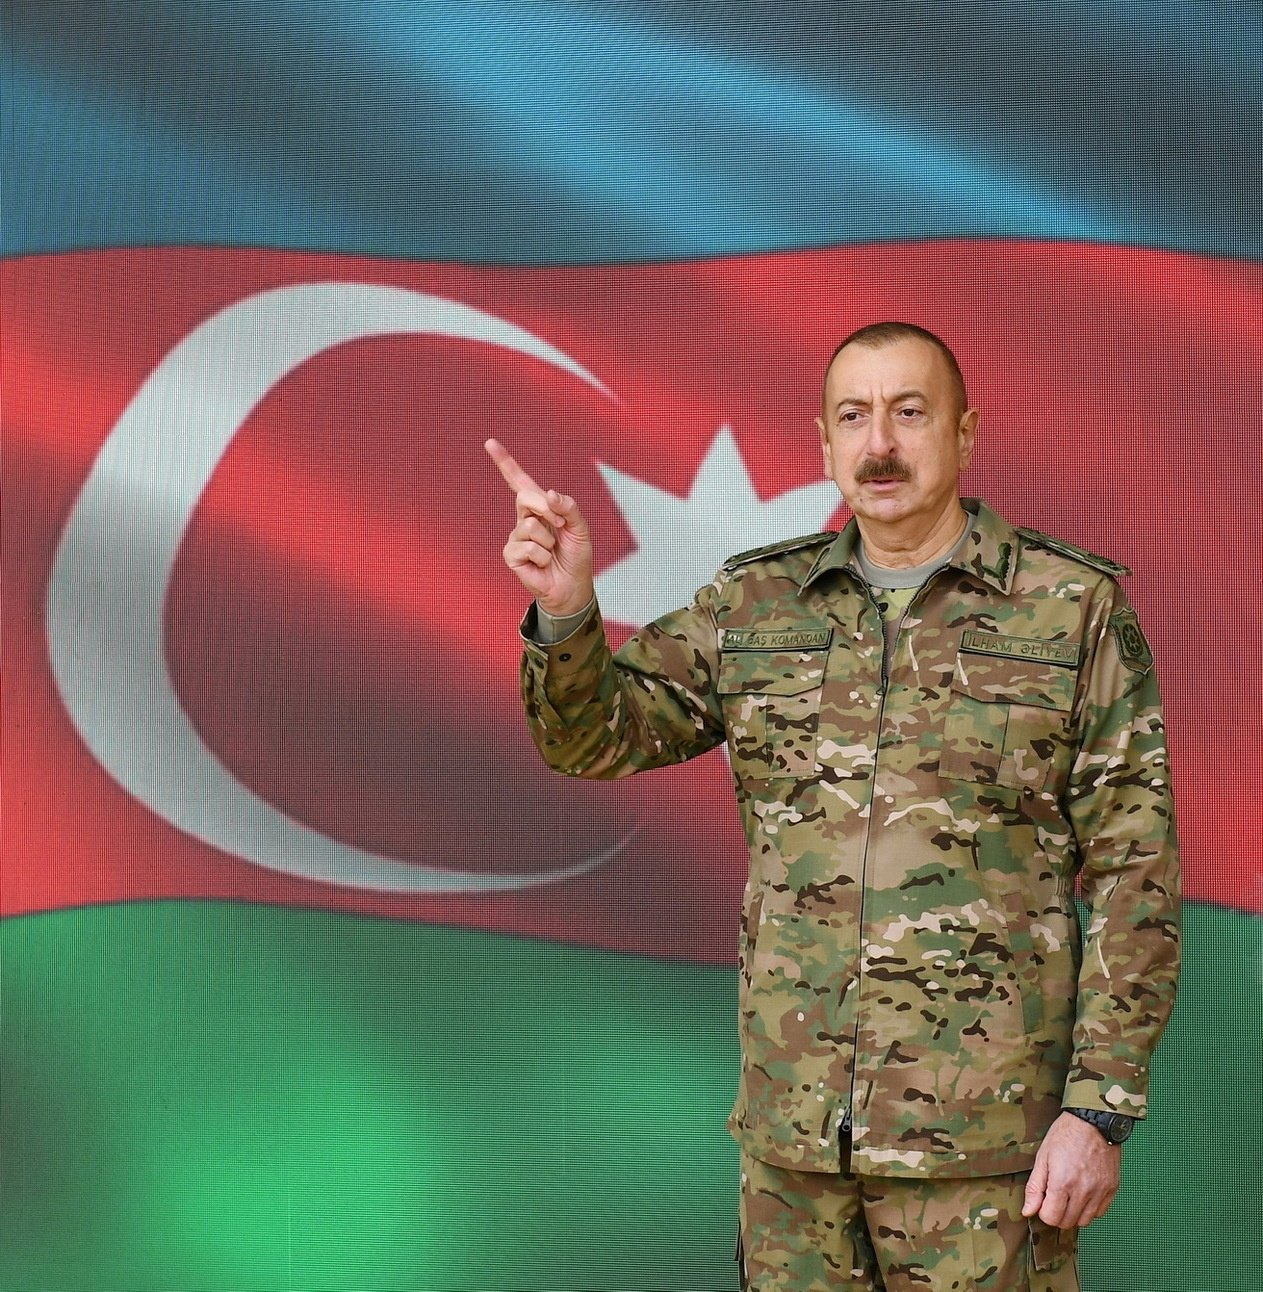 Azerbaijan's President Ilham Aliyev gestures as he addresses the nation during his visit to the Alley of Martyrs in Baku, Azerbaijan on Nov. 8, 2020. (Reuters Photo)